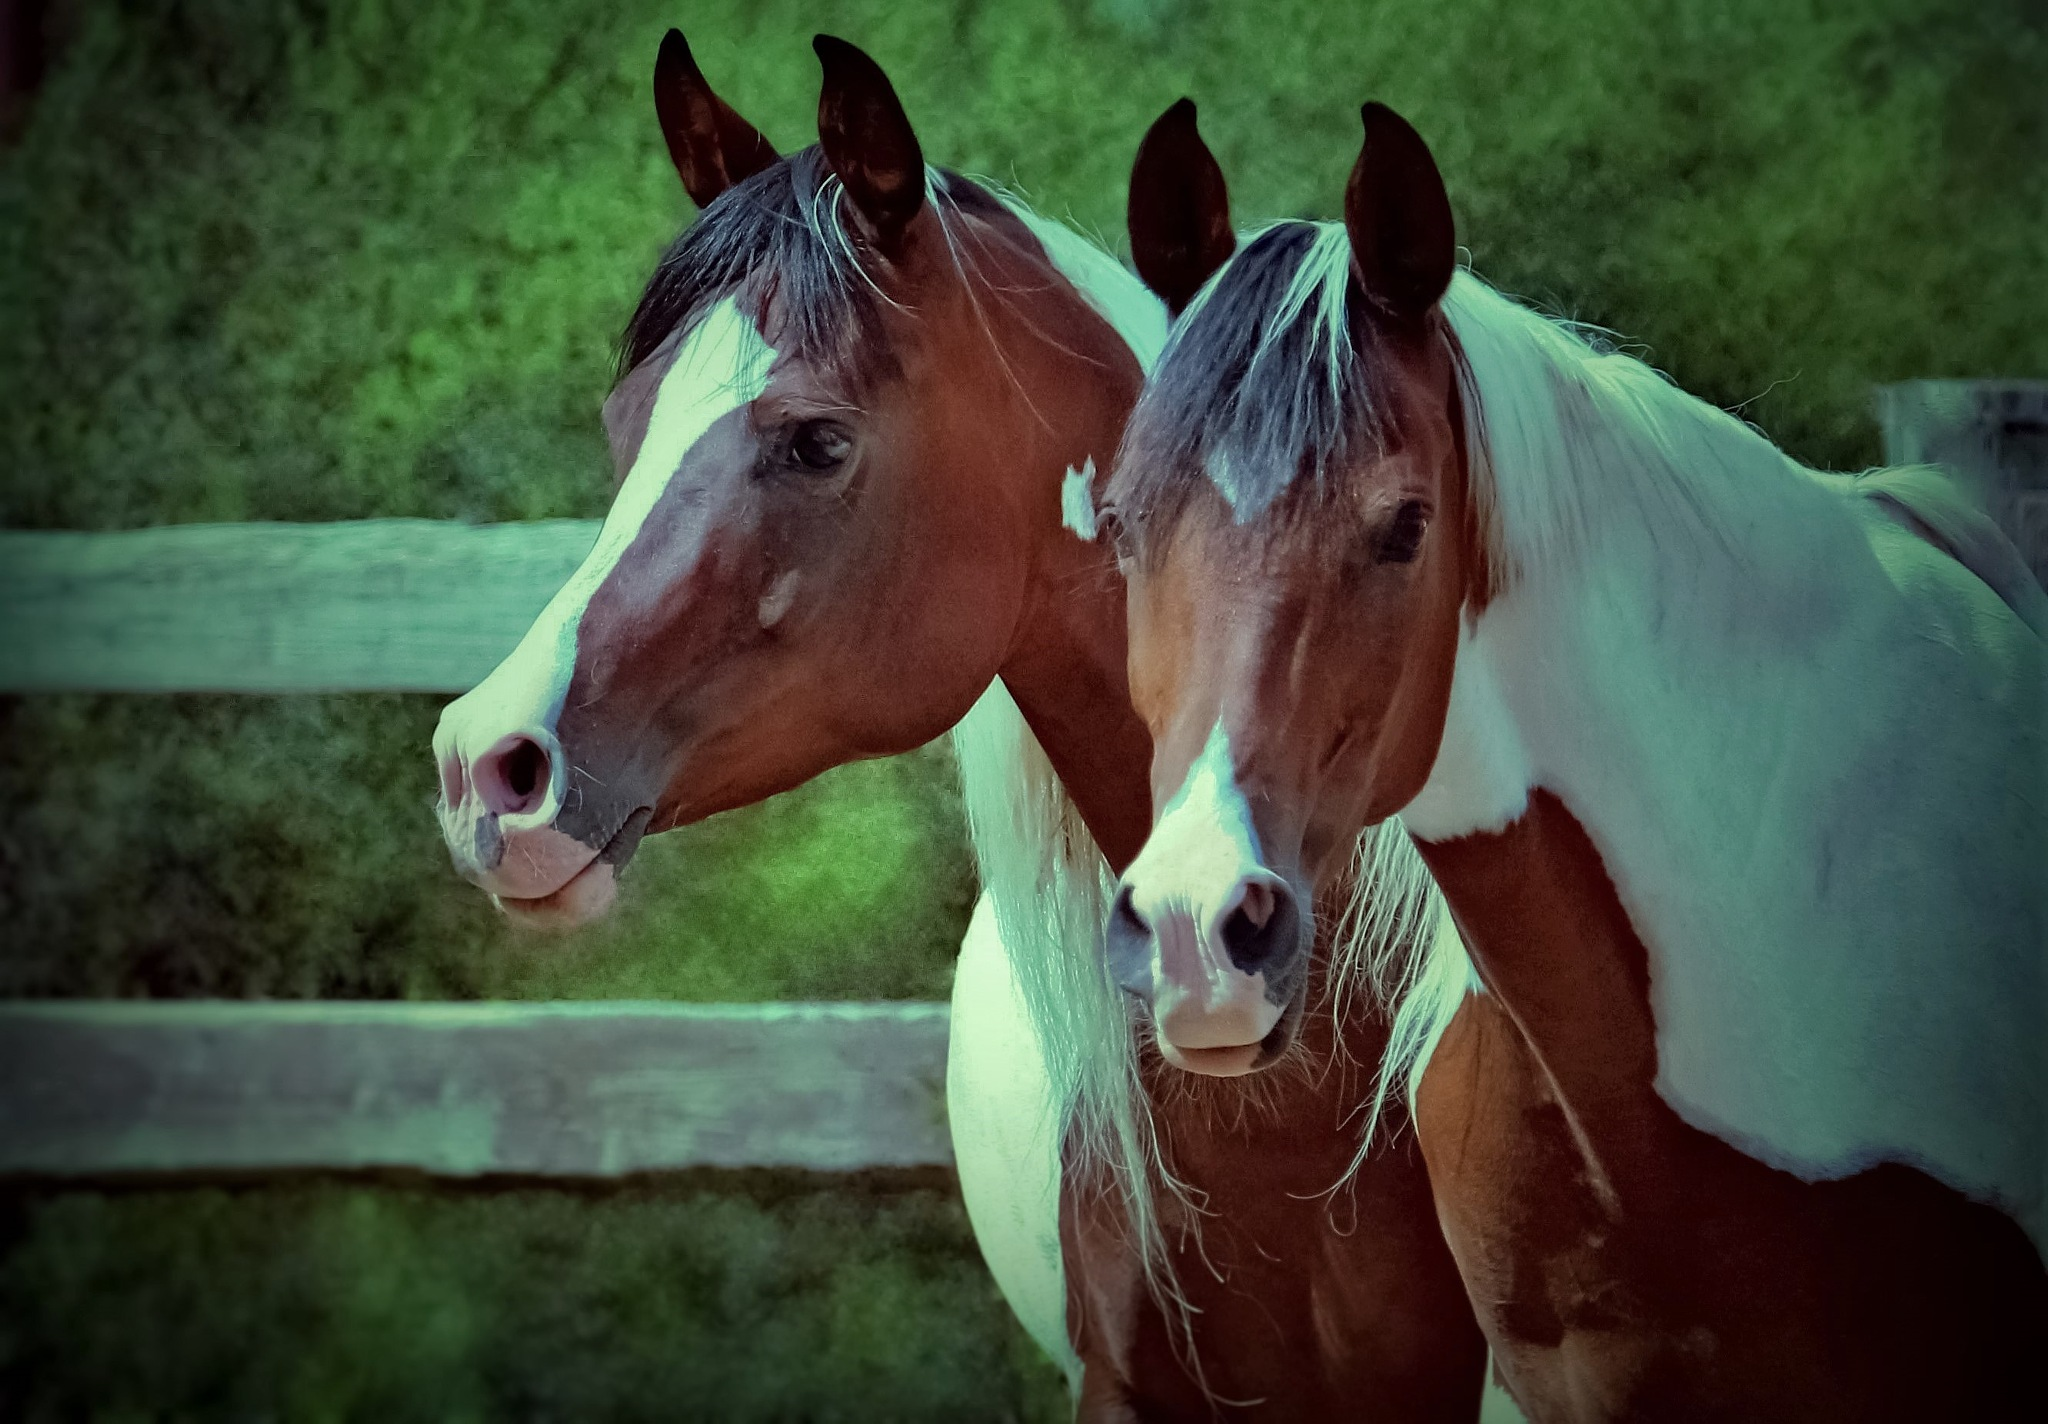 Proud Mares (mom&daughter) by Sue Delia